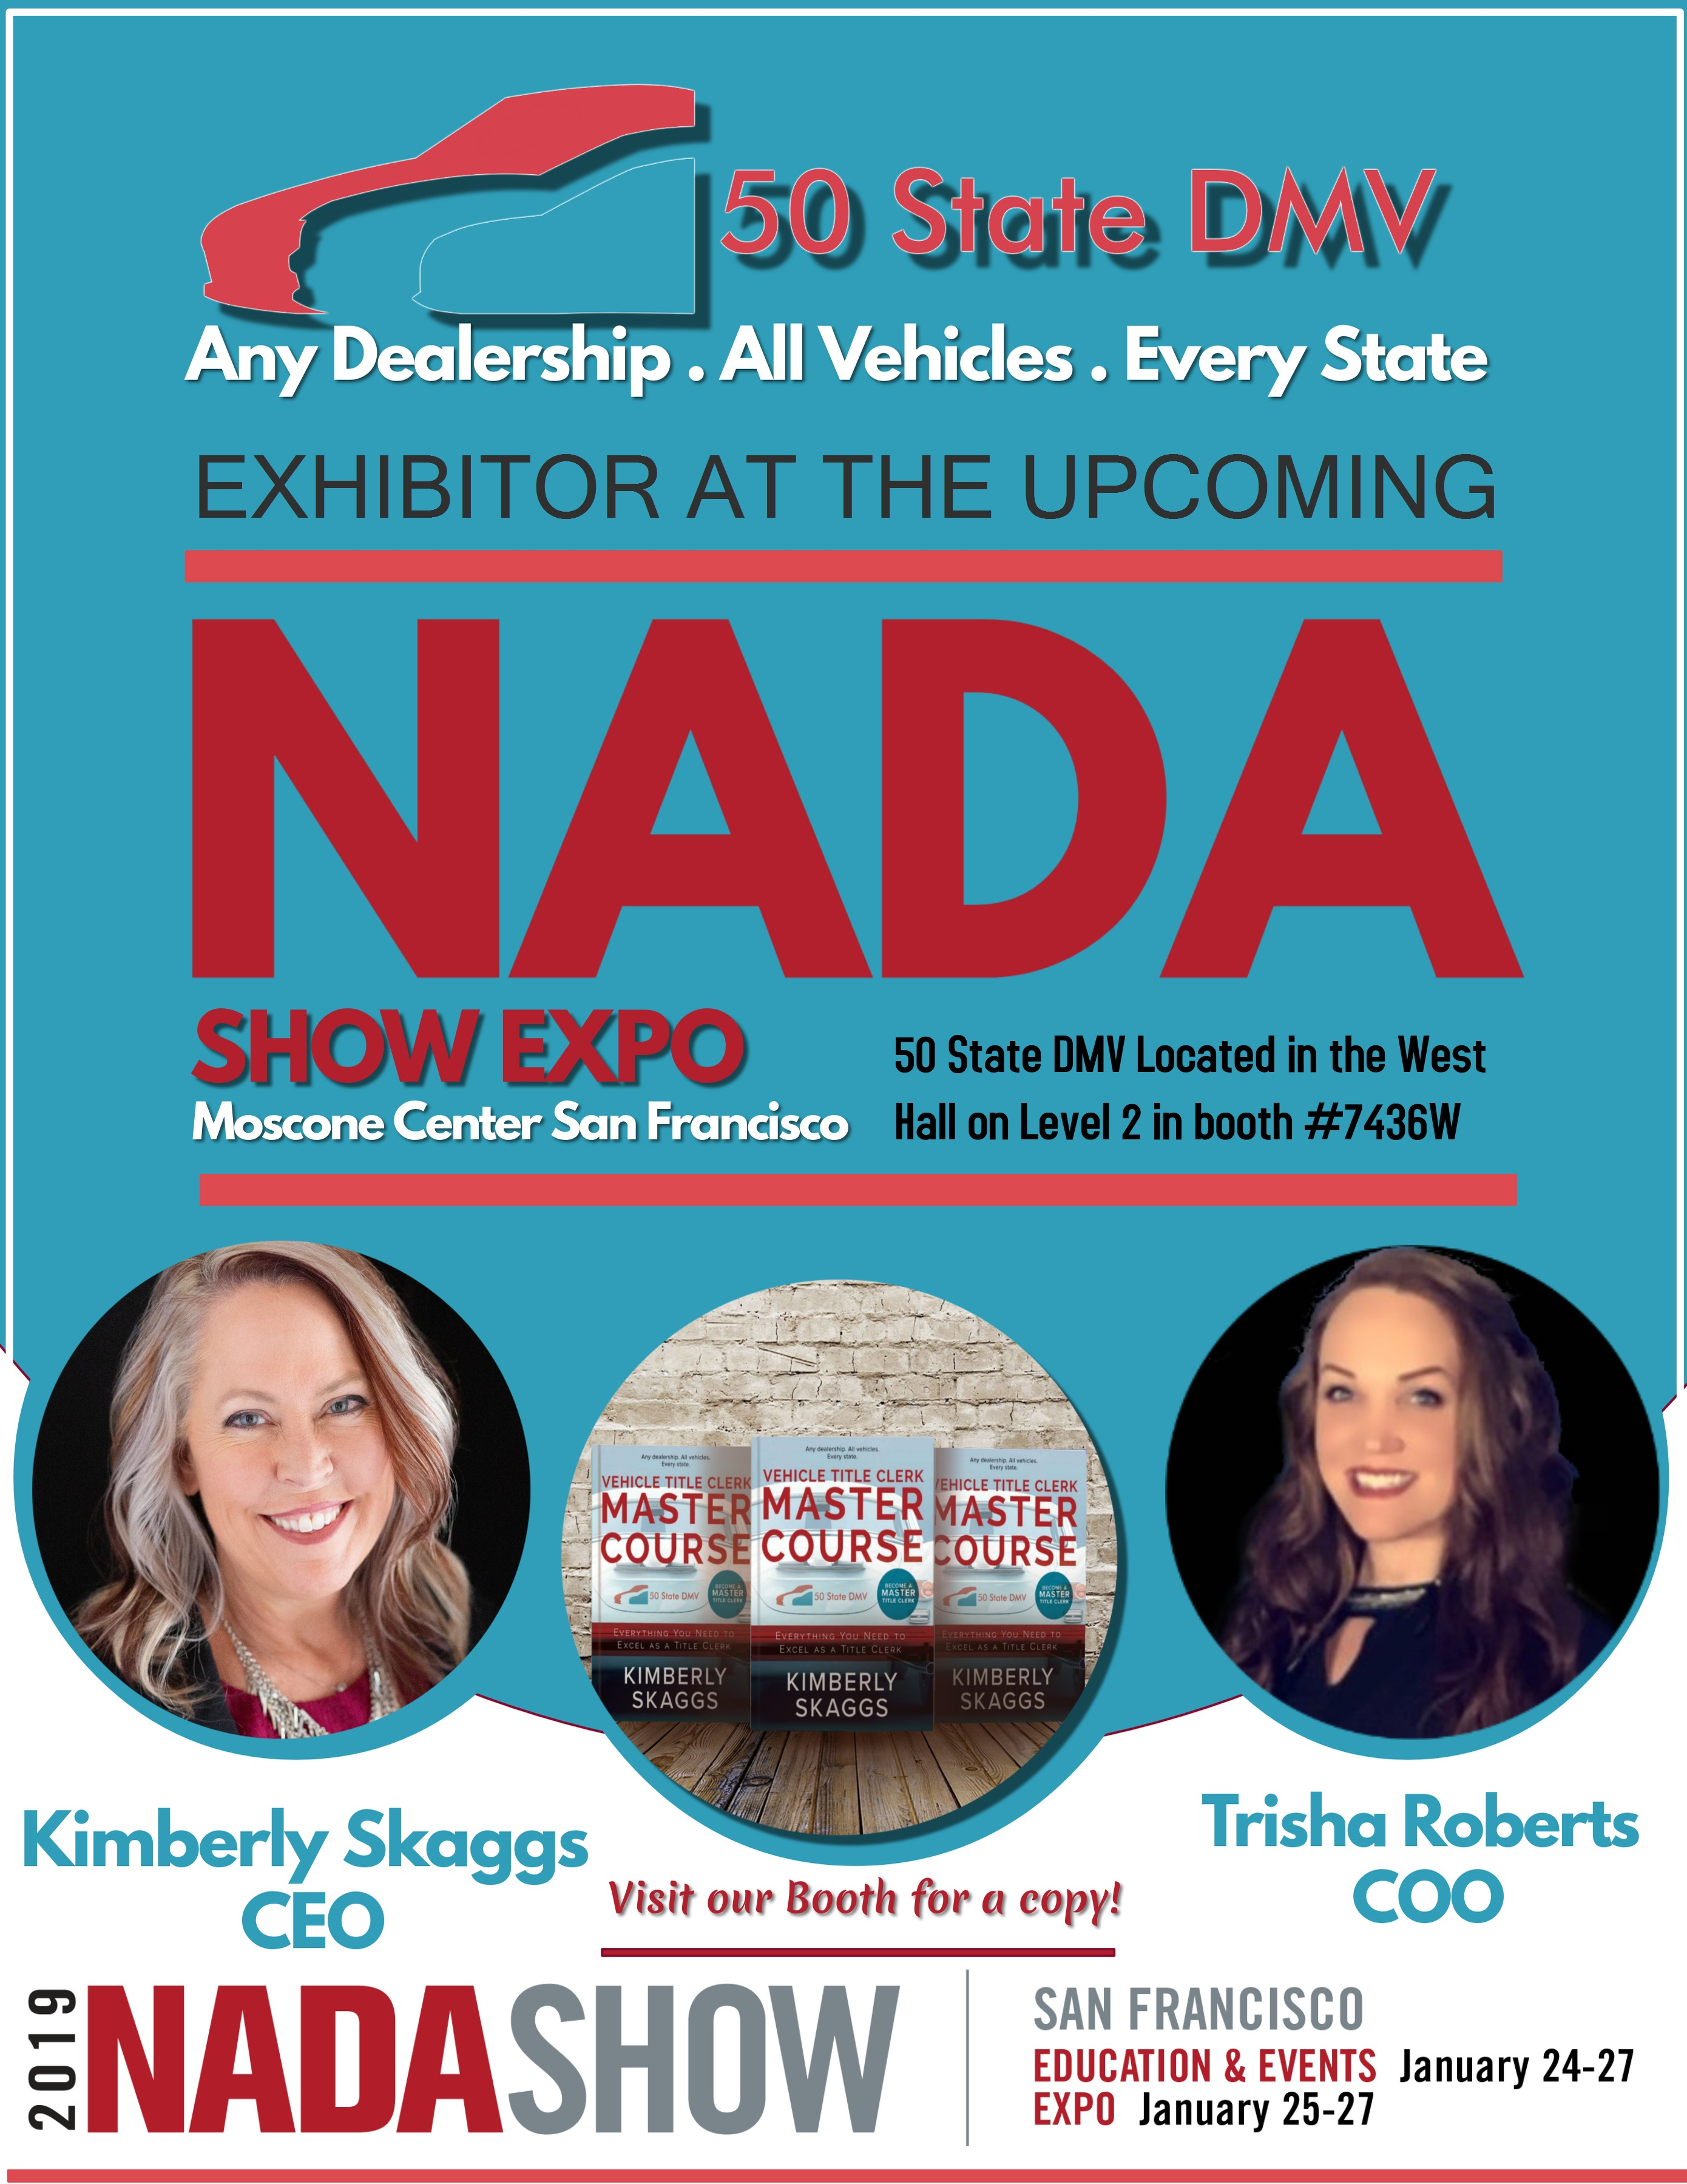 Las Cruces Car Dealerships >> 50 State DMV to Exhibit at 2019 NADA Expo | Newswire